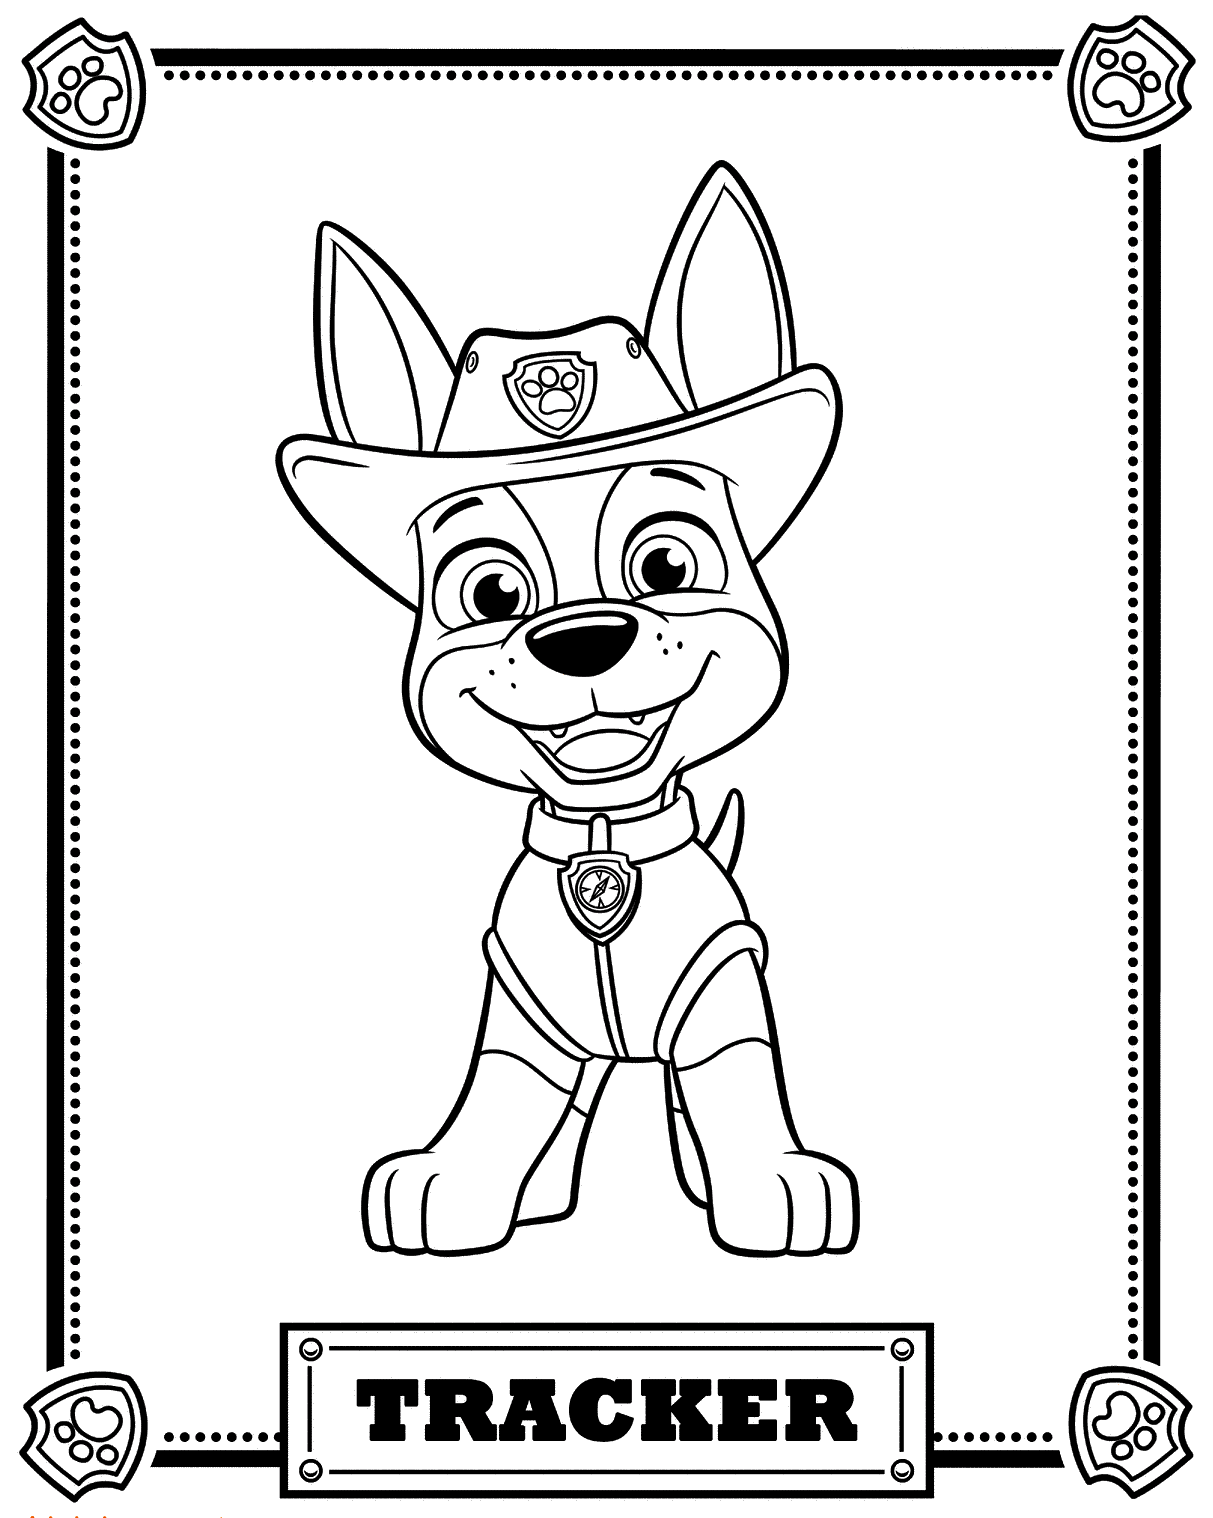 paw patrol coloring pages free paw patrol coloring pages free download on clipartmag paw coloring patrol free pages